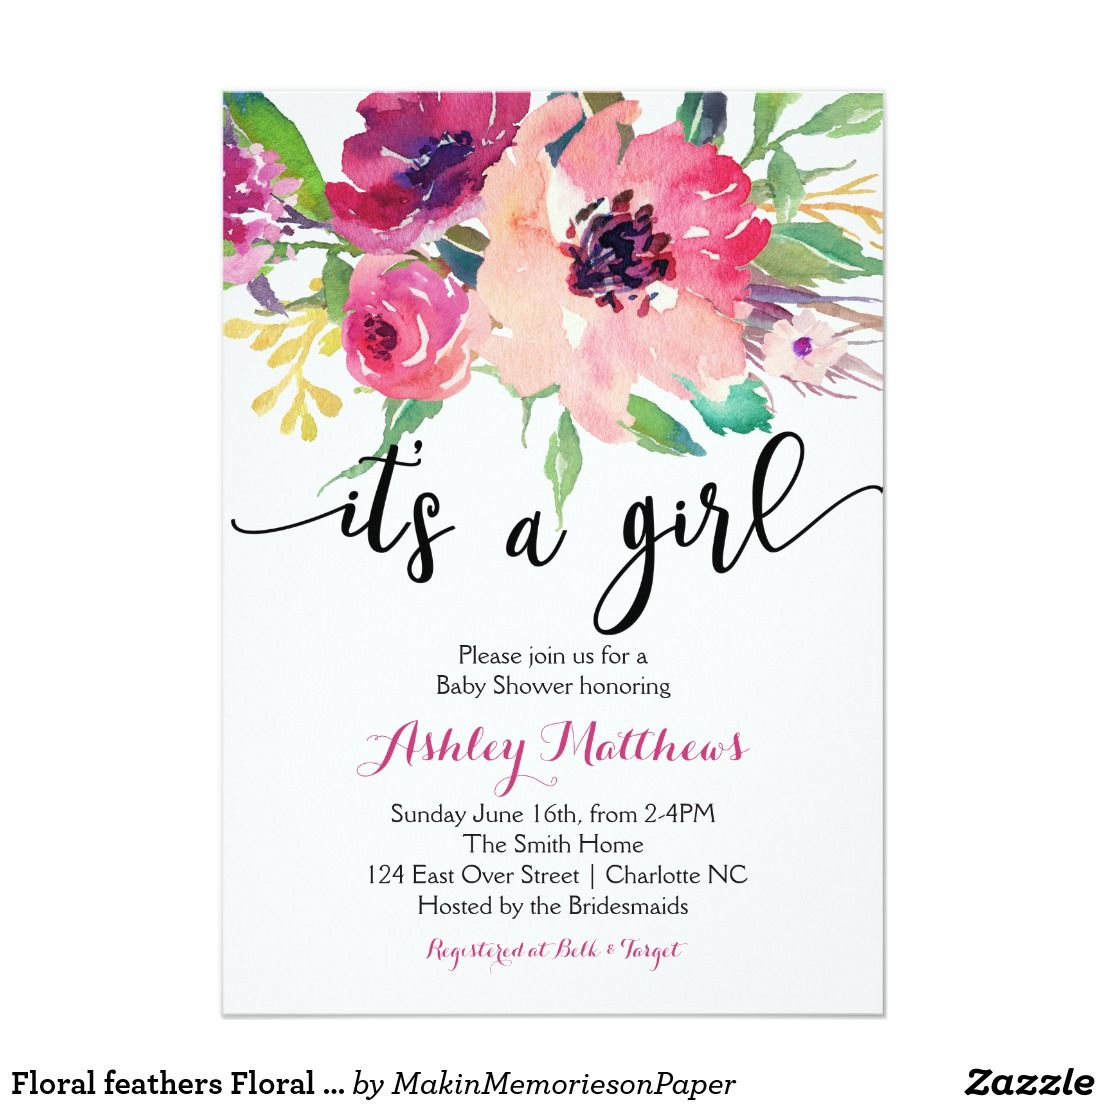 Floral feathers Floral Baby Shower Invitation | Watercolor Clipart ...